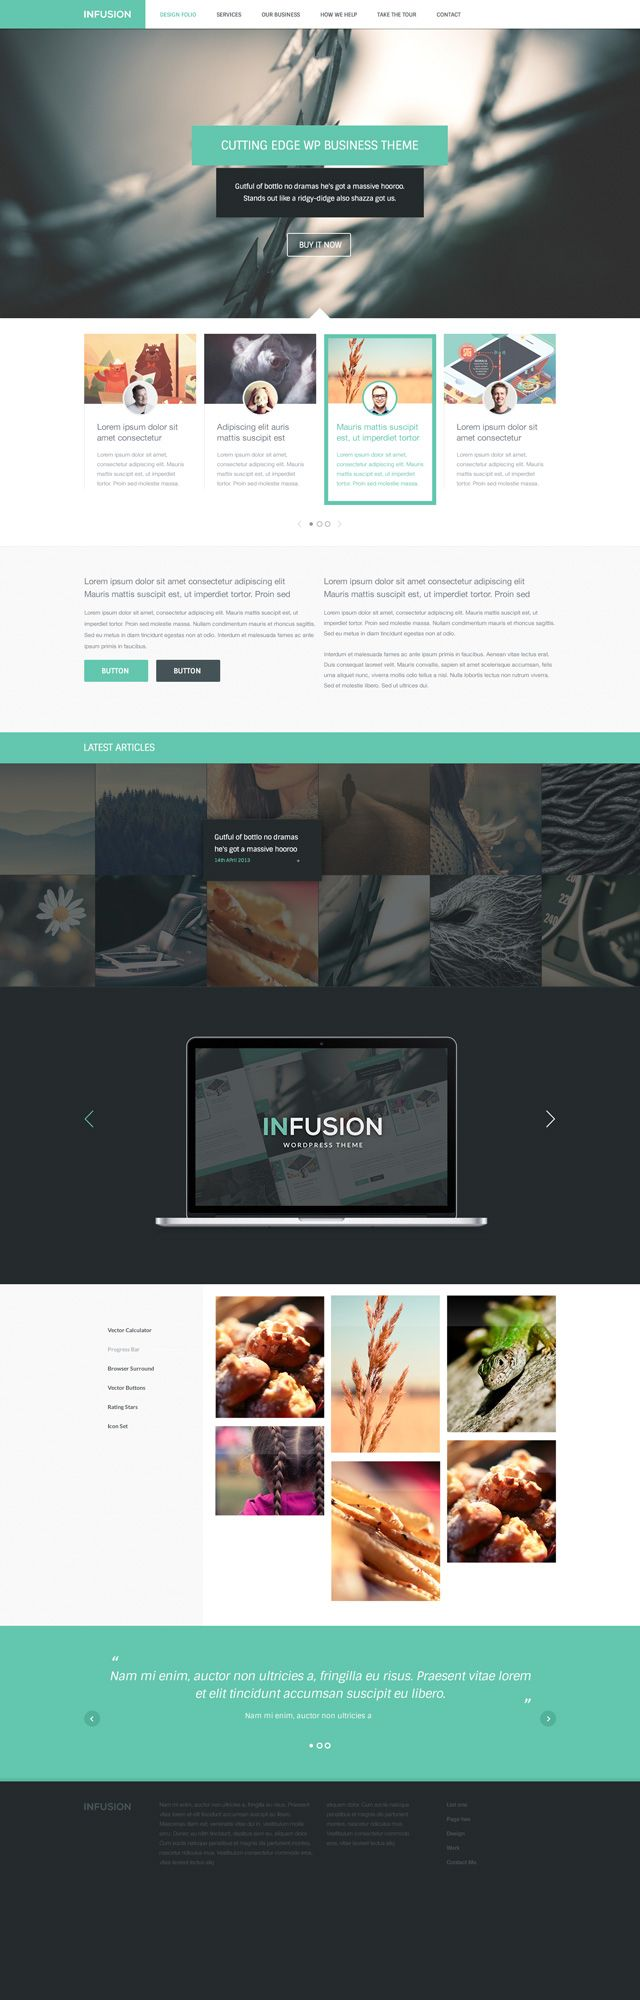 330 best web_ images on Pinterest | Graph design, Infographic and Charts